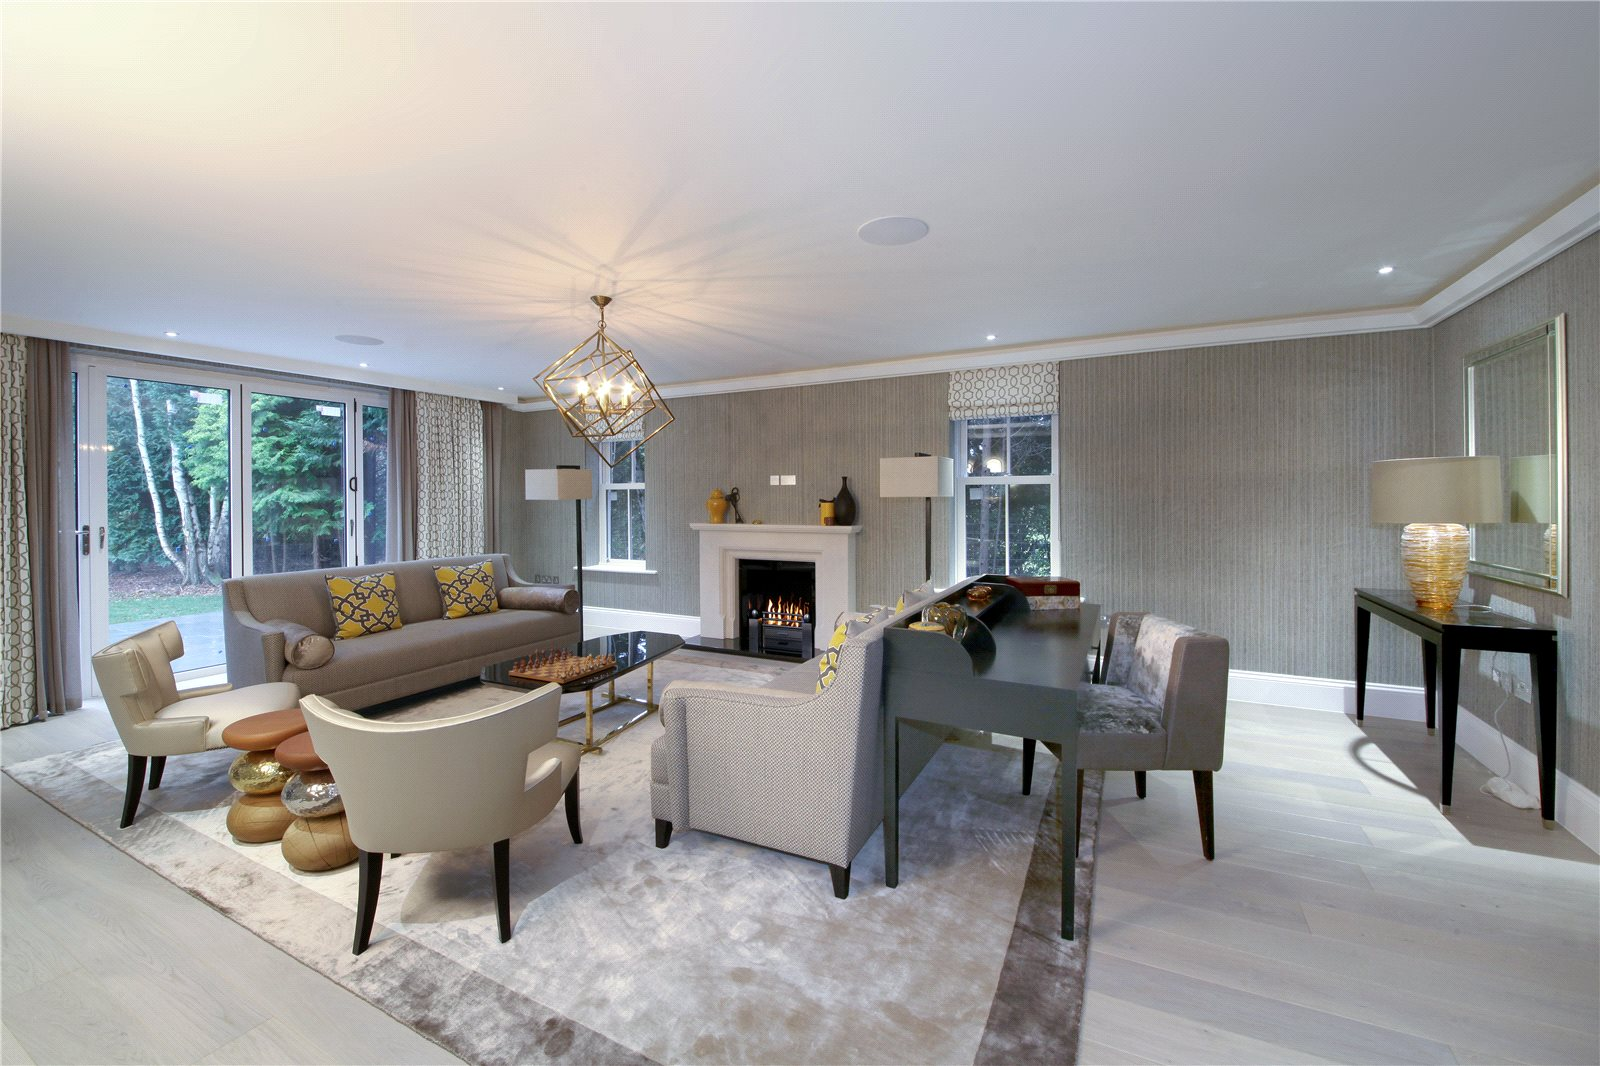 Additional photo for property listing at Prince Consort Drive, Ascot, Berkshire, SL5 Ascot, England